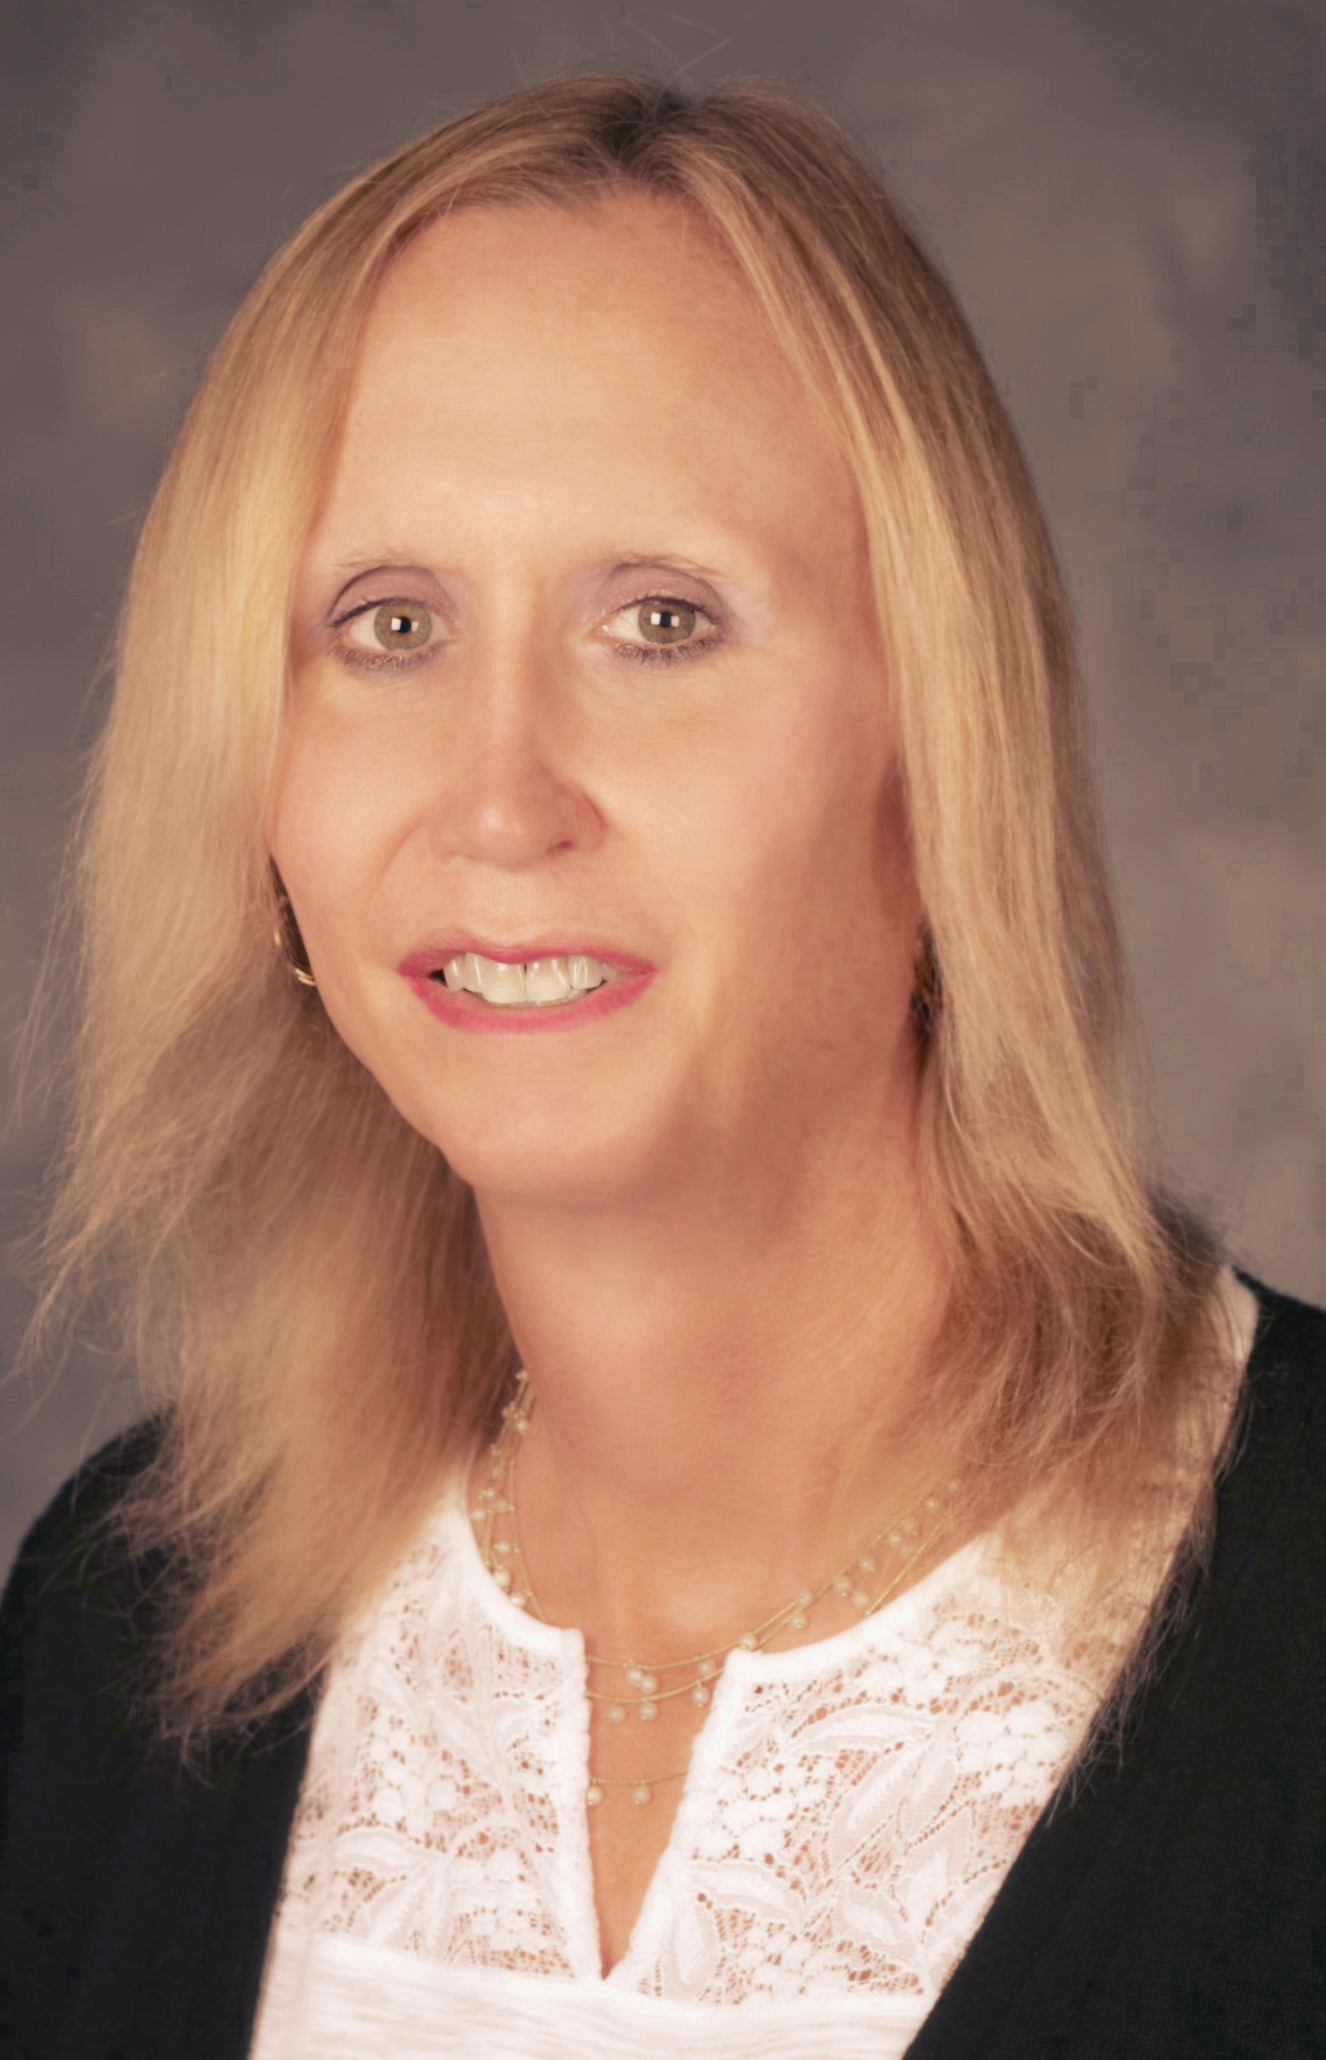 This is an image of Nikki Burgess, Senior Staff Regulatory Specialist